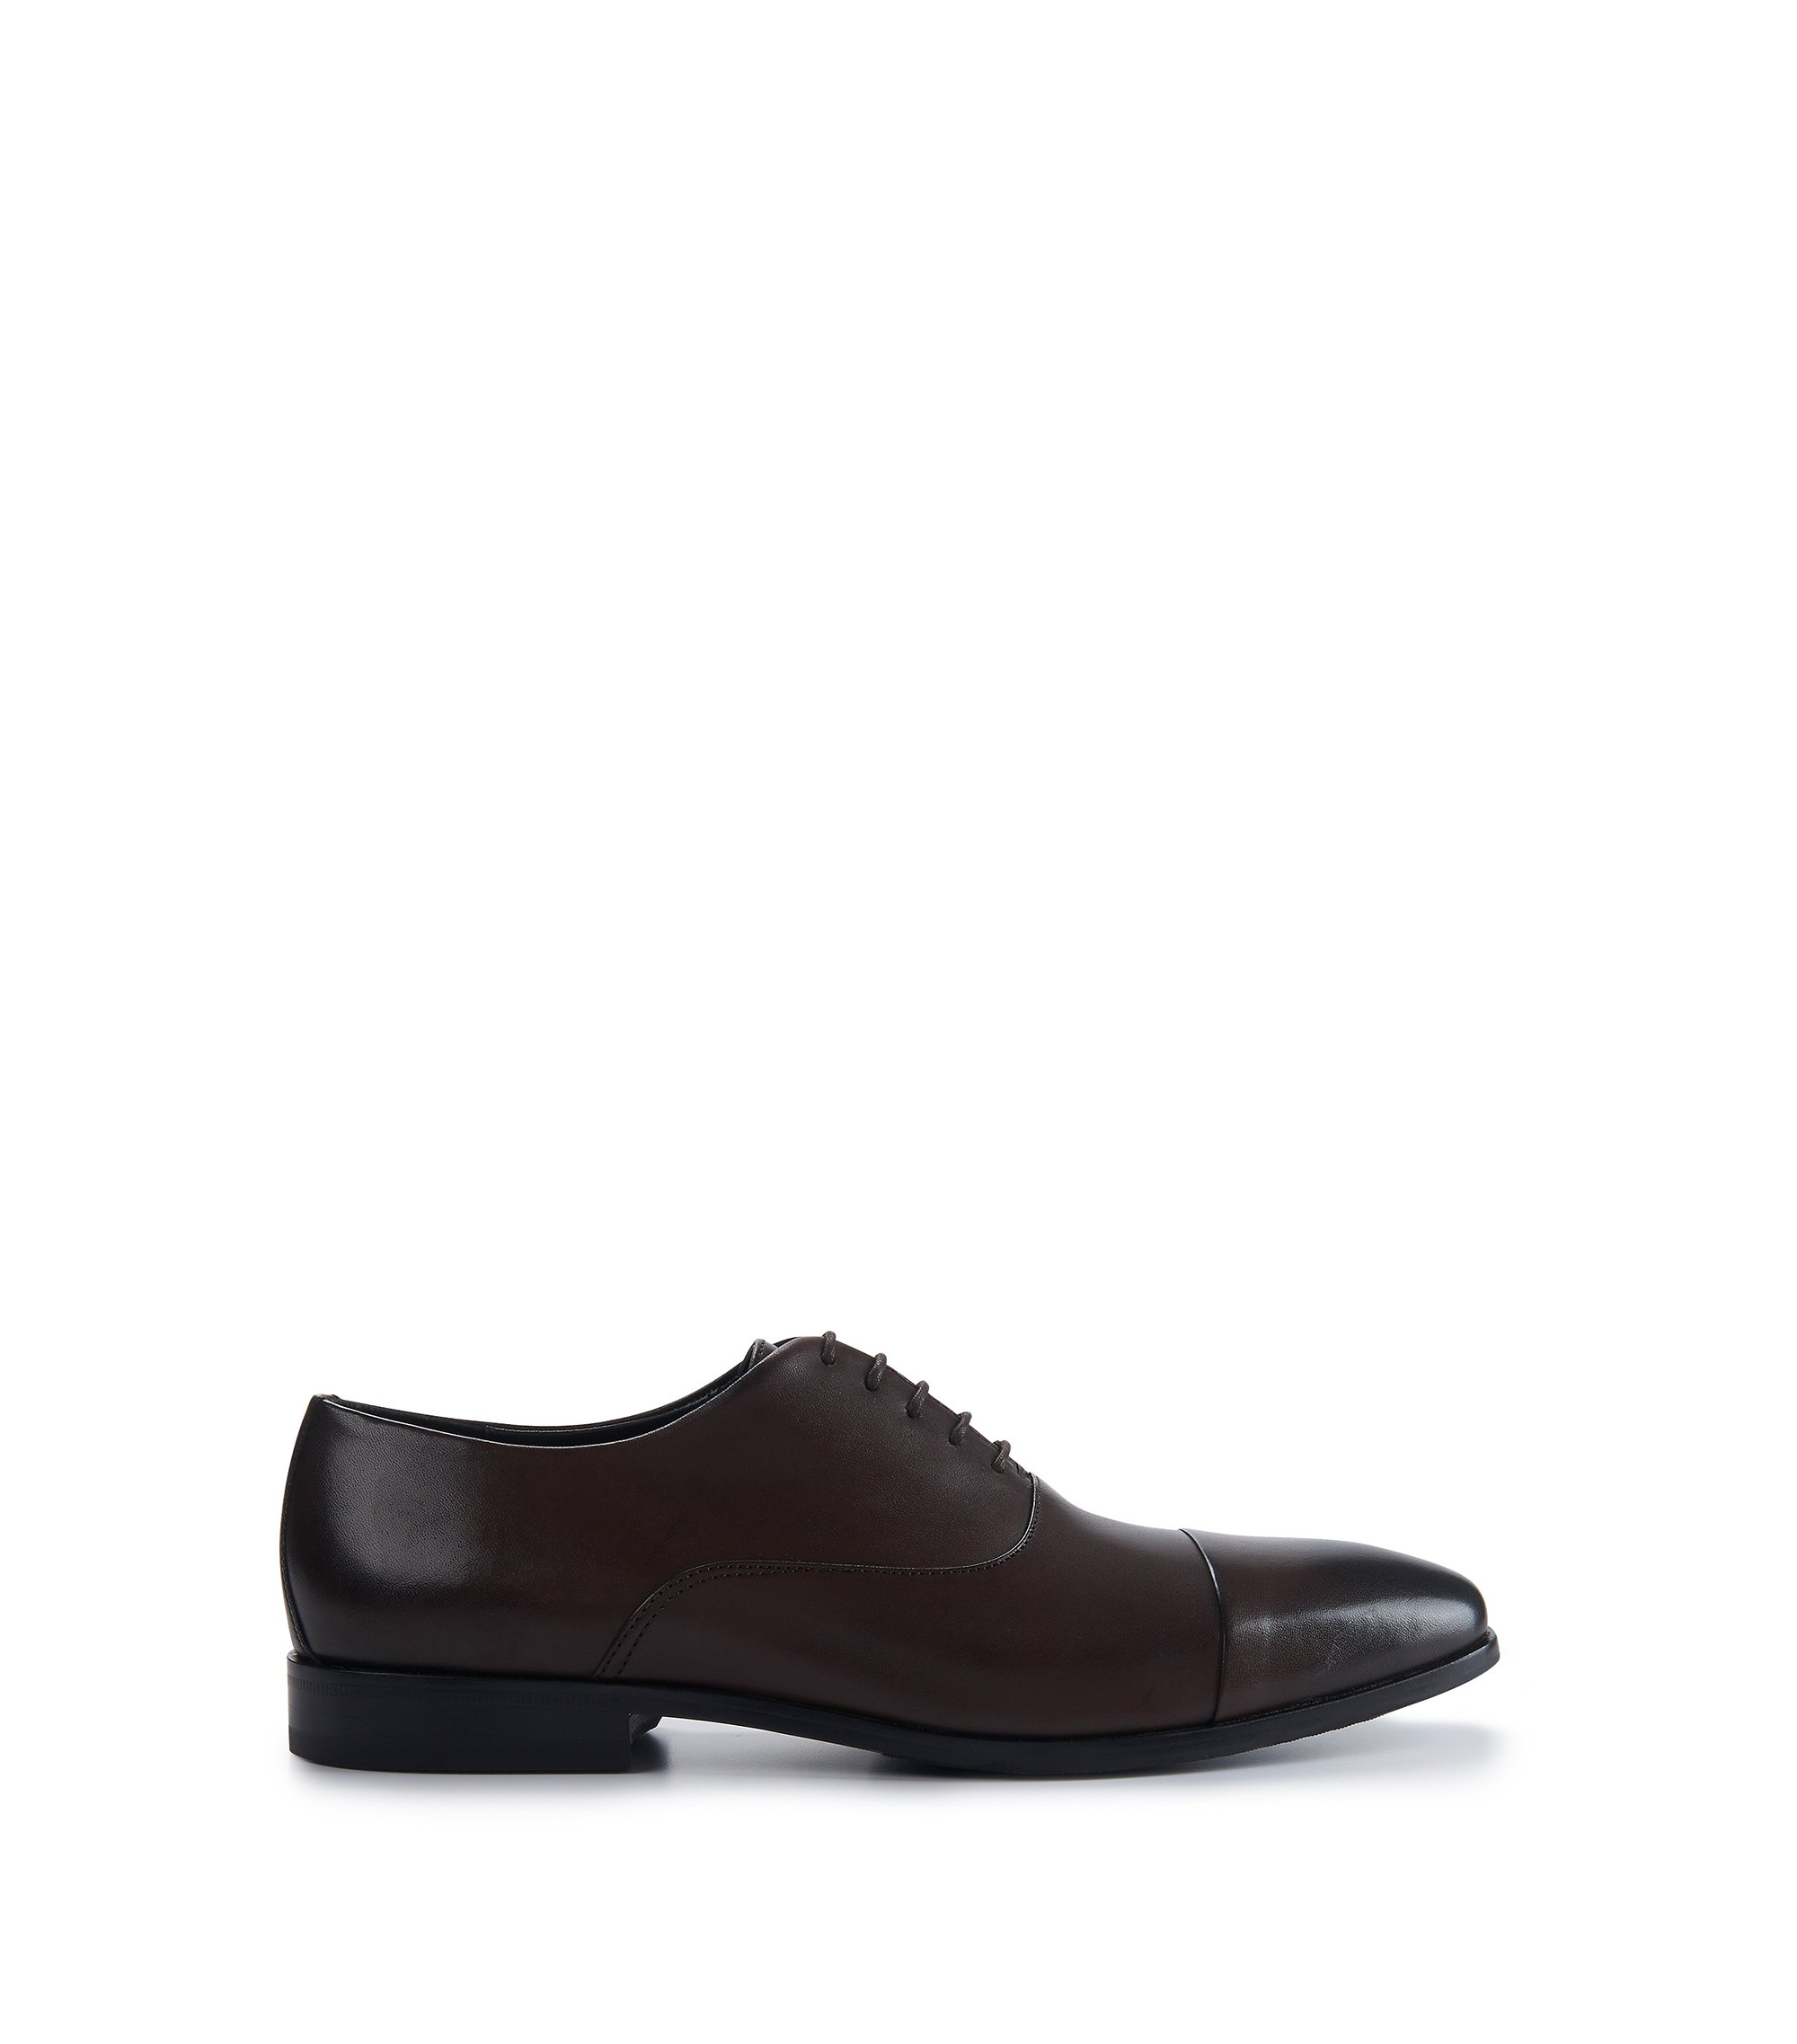 Leather Oxford Dress Shoe | Highline Oxfr Buct, Dark Brown